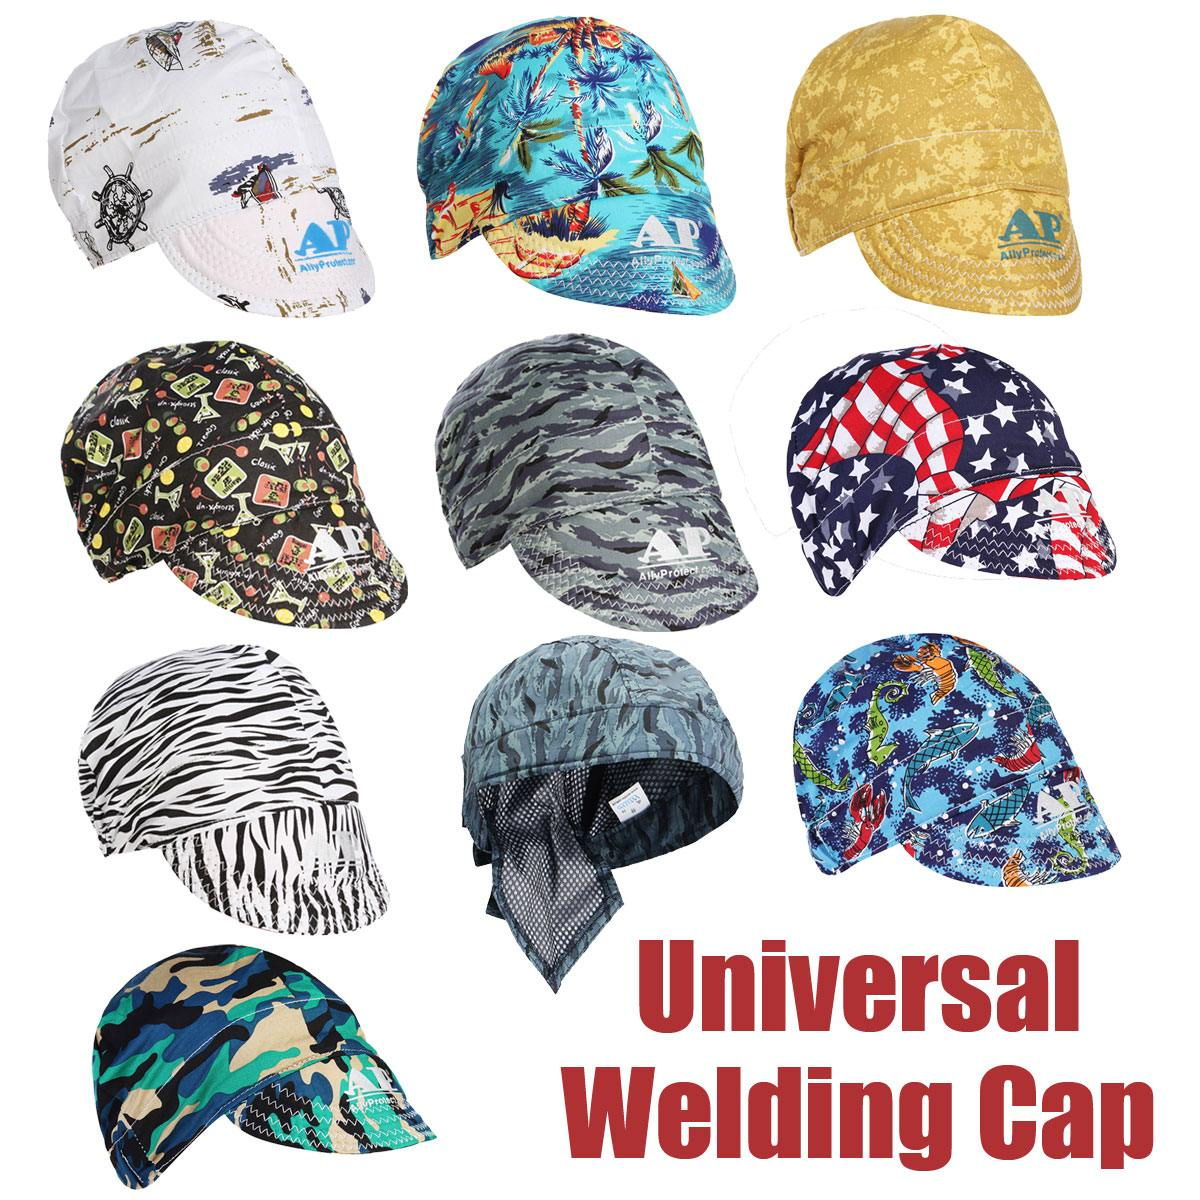 GREEN BACK GROUND FABRIC WELDING CAP WITH  BANDANA DESIGN  WITH